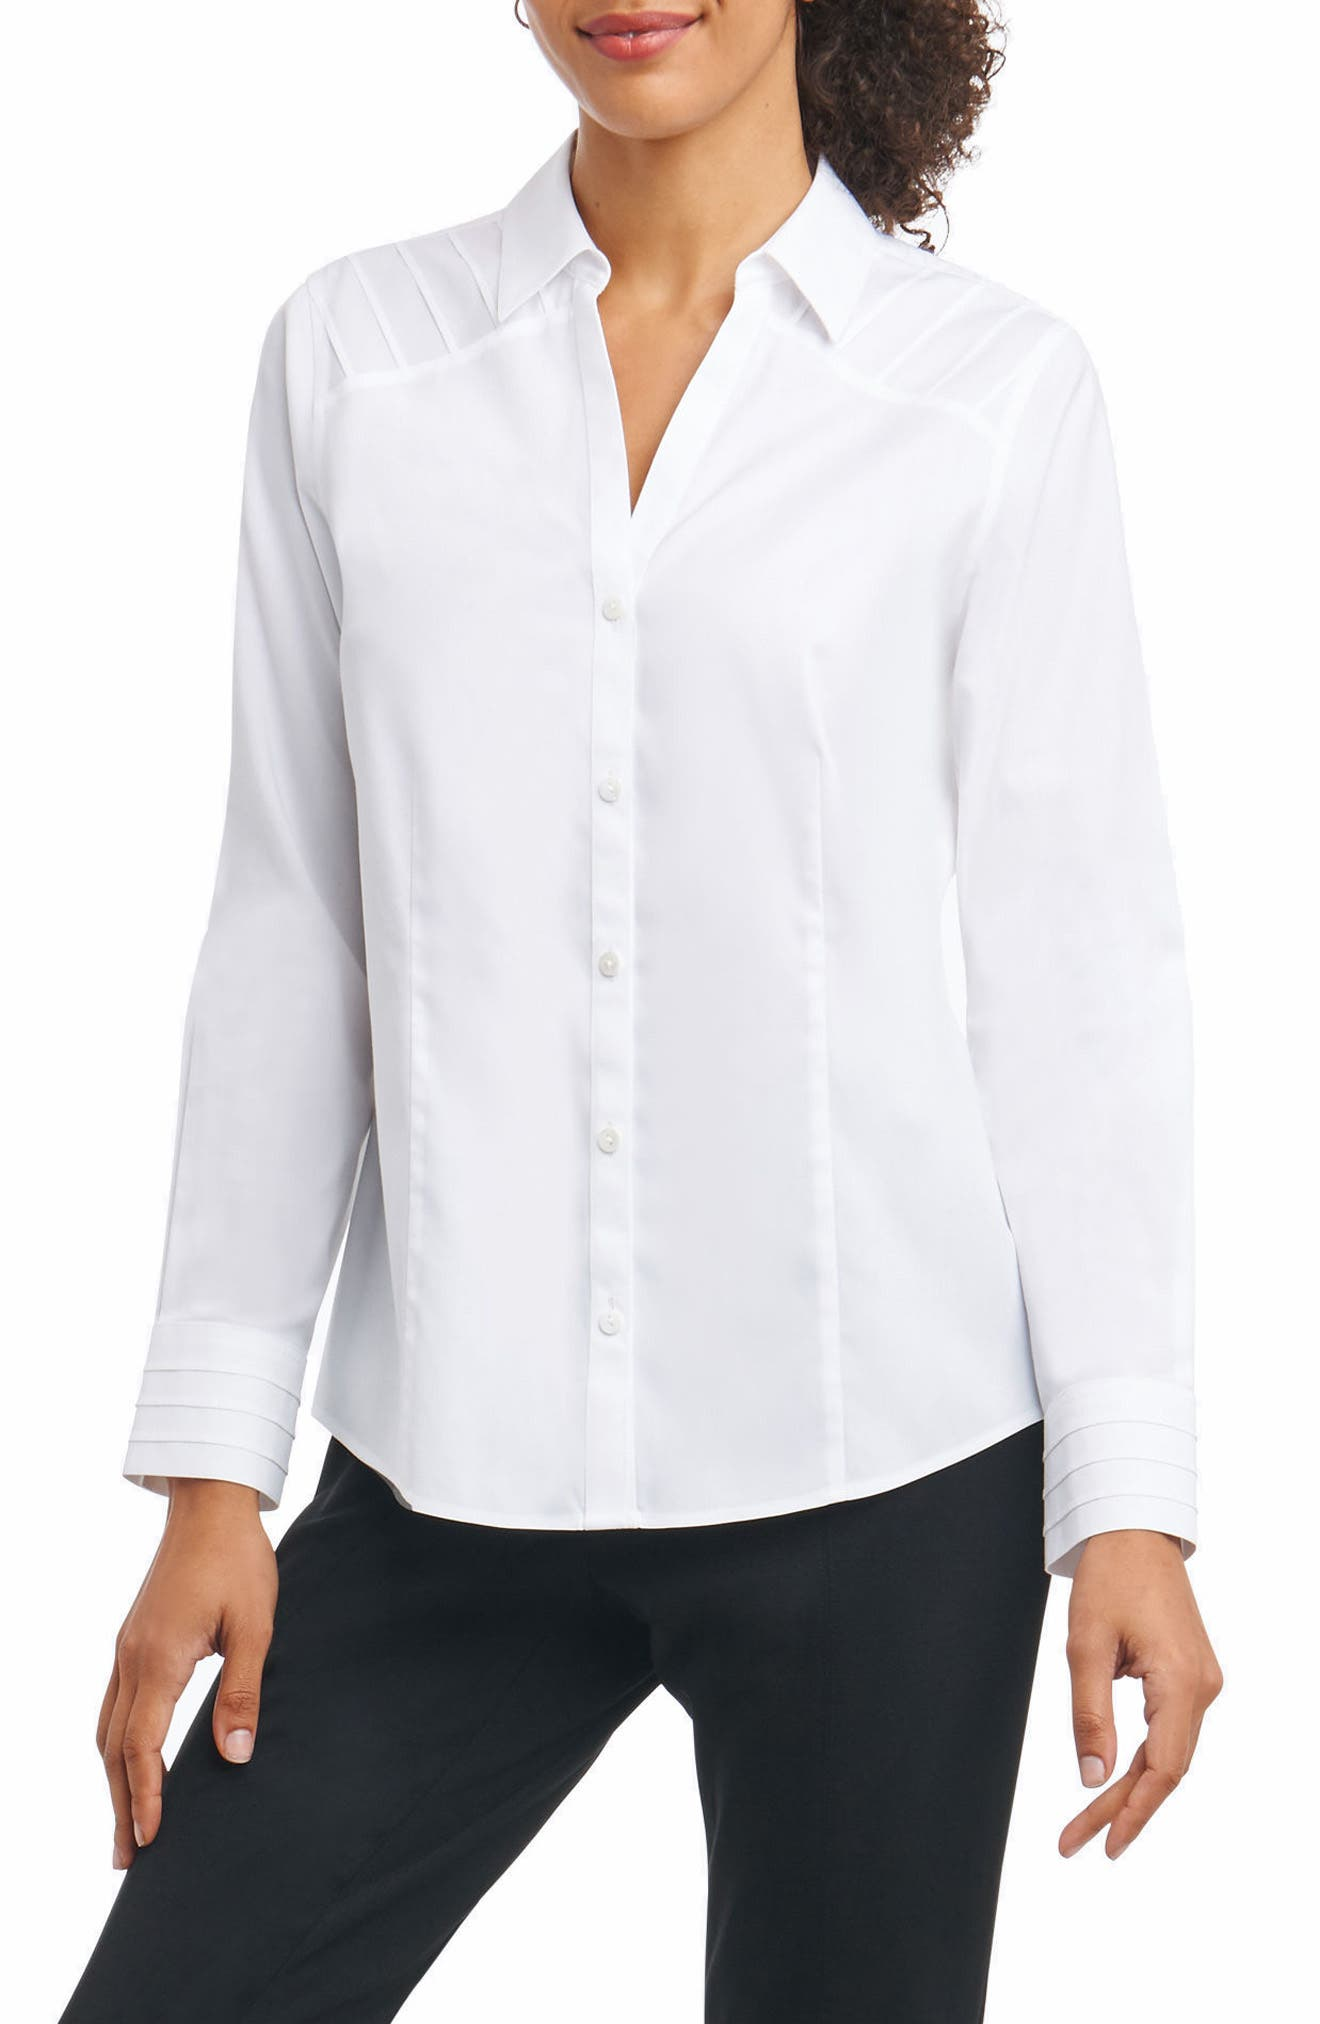 Main Image - Foxcroft Rita in Solid Stretch Button Down Shirt